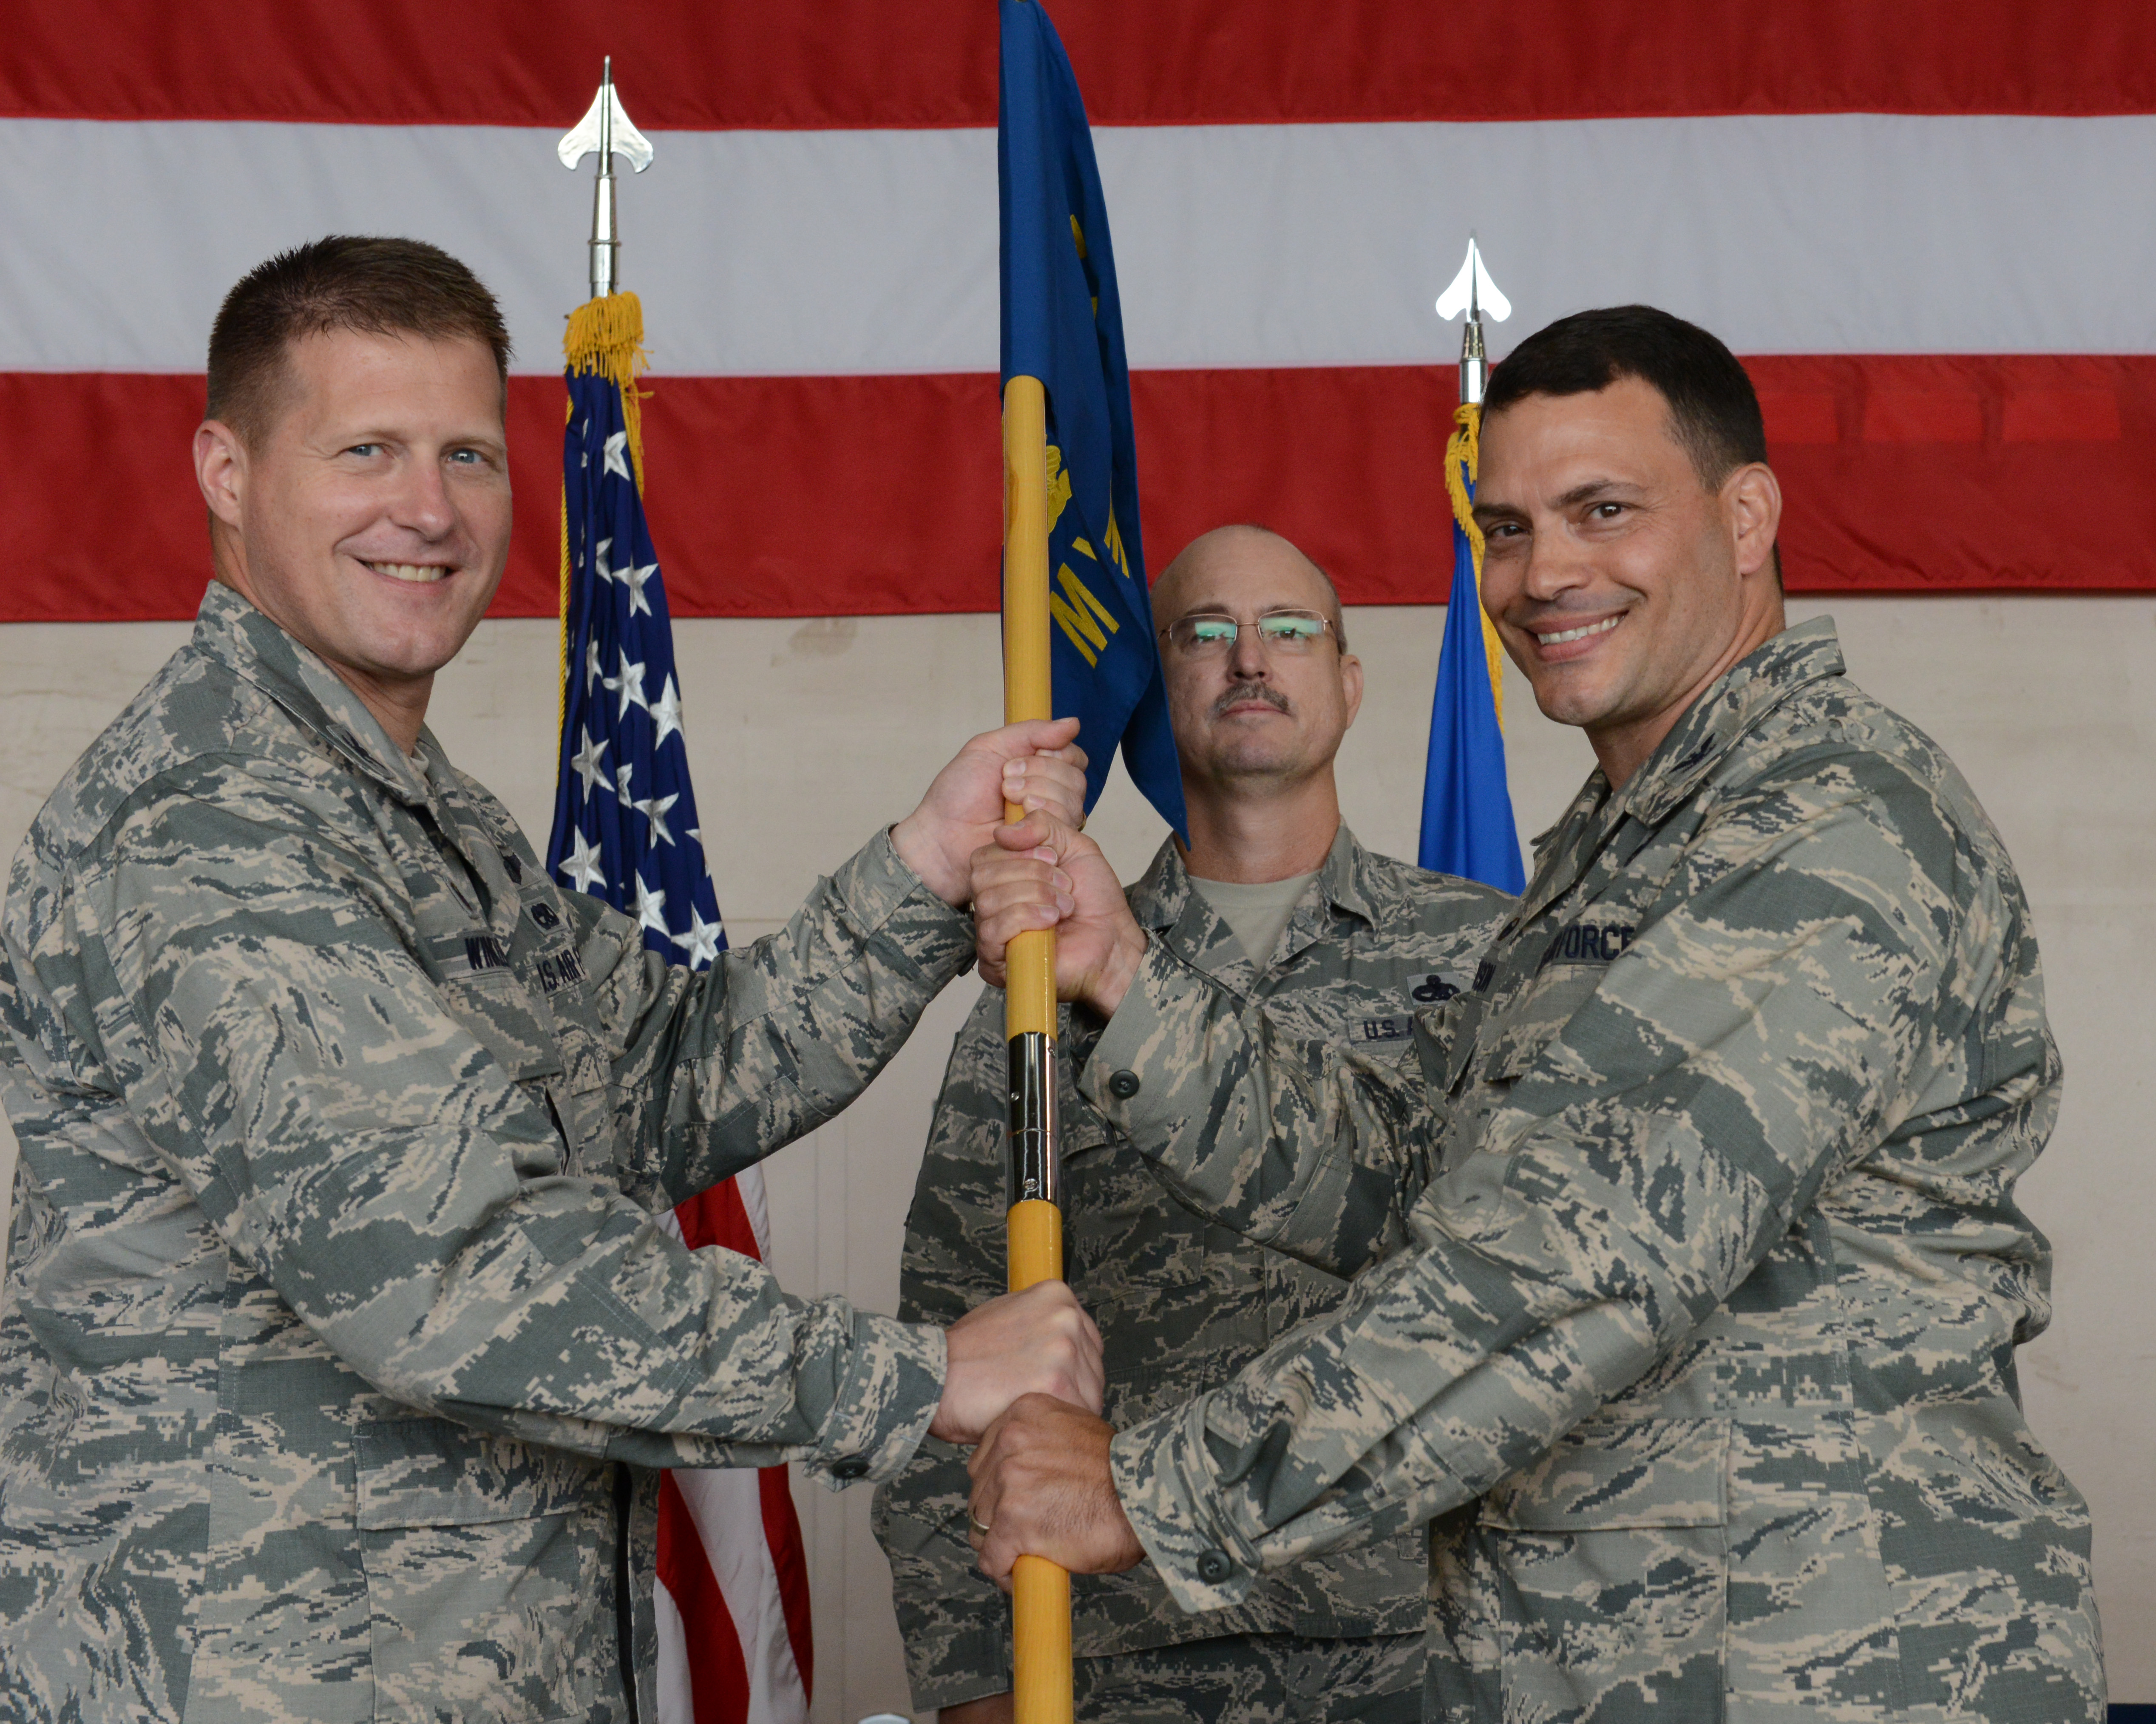 eielson afb senior dating site Hq air force housing has successfully piloted heat at wright-patterson afb and joint base langley-eustis eielson afb: osan ab: ellsworth afb: patrick afb.